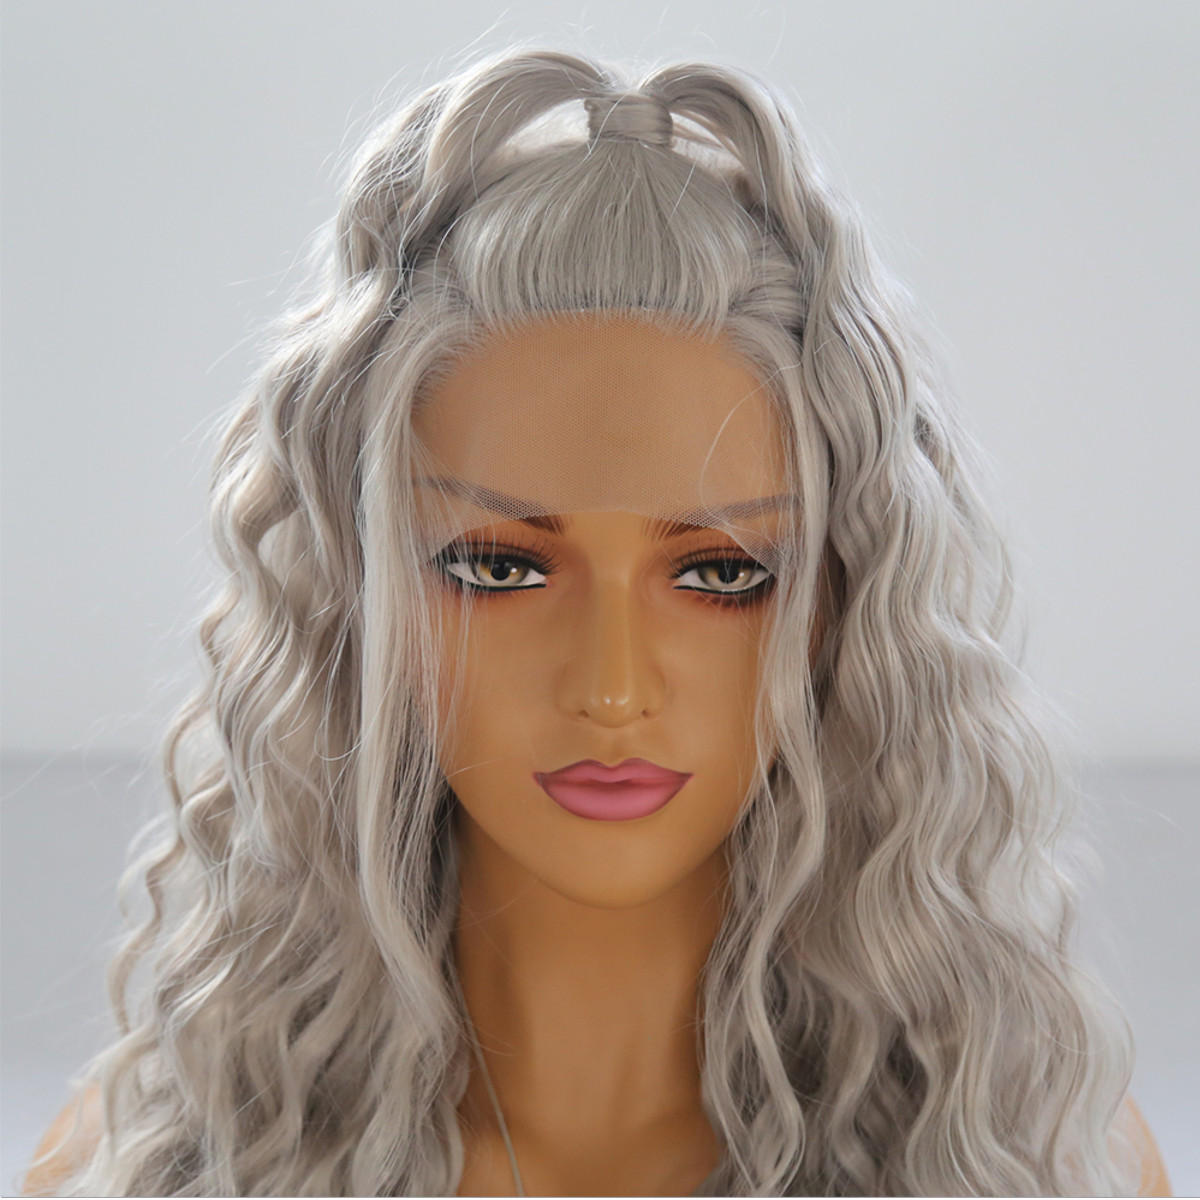 24 '' Frontale in pizzo ondulato naturale da donna Parrucca Girls Golden Blonde Curly Synthetic Capelli - 4